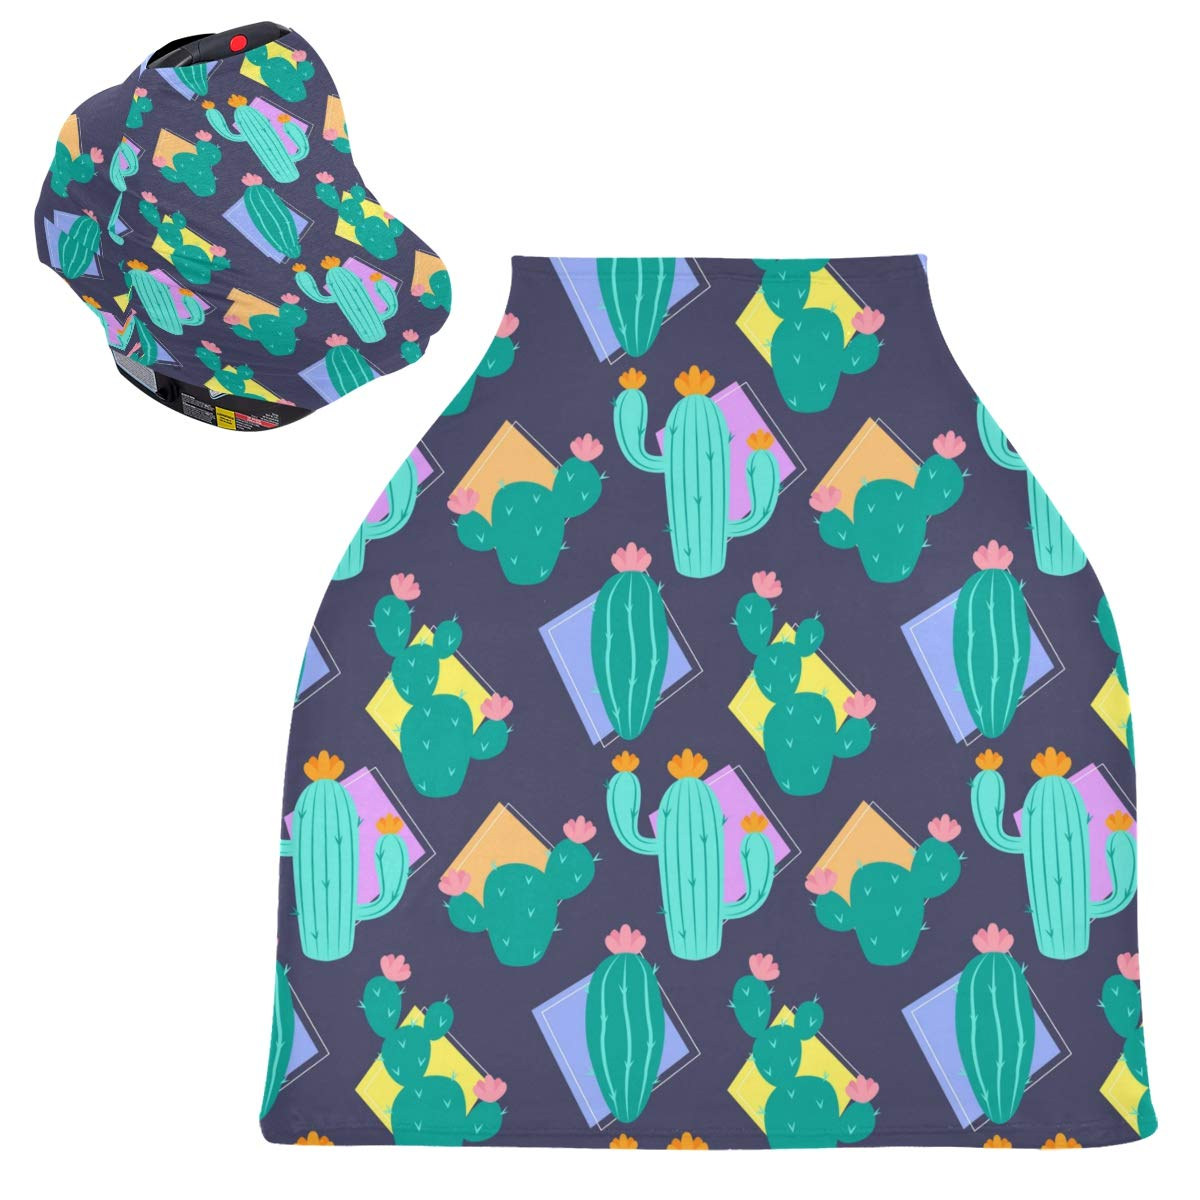 Stretchy Baby Car Seat Canopy - Cactus Tropical Infant Stroller Cover Multi Use Carseat Scarf Nursing Cover for Girl